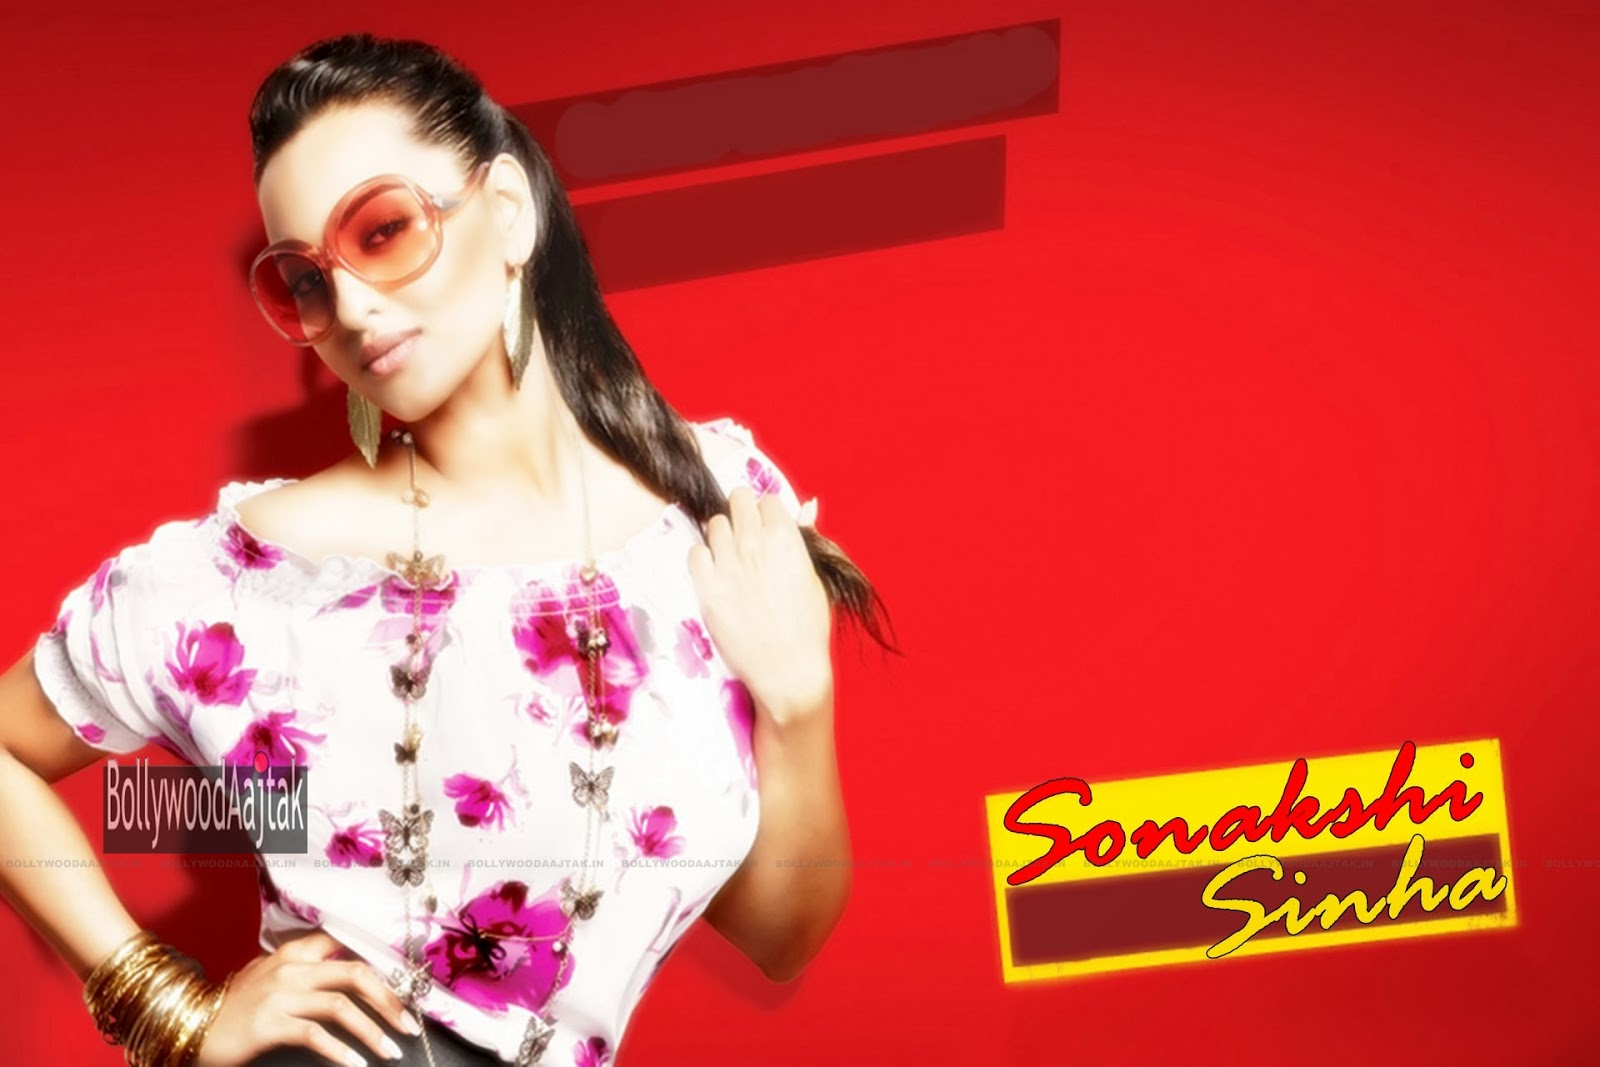 Sonakshi Sinha Hd Wallpapers: HQ Hot Wallpapers: Sonakshi Sinha HD Wallpapers